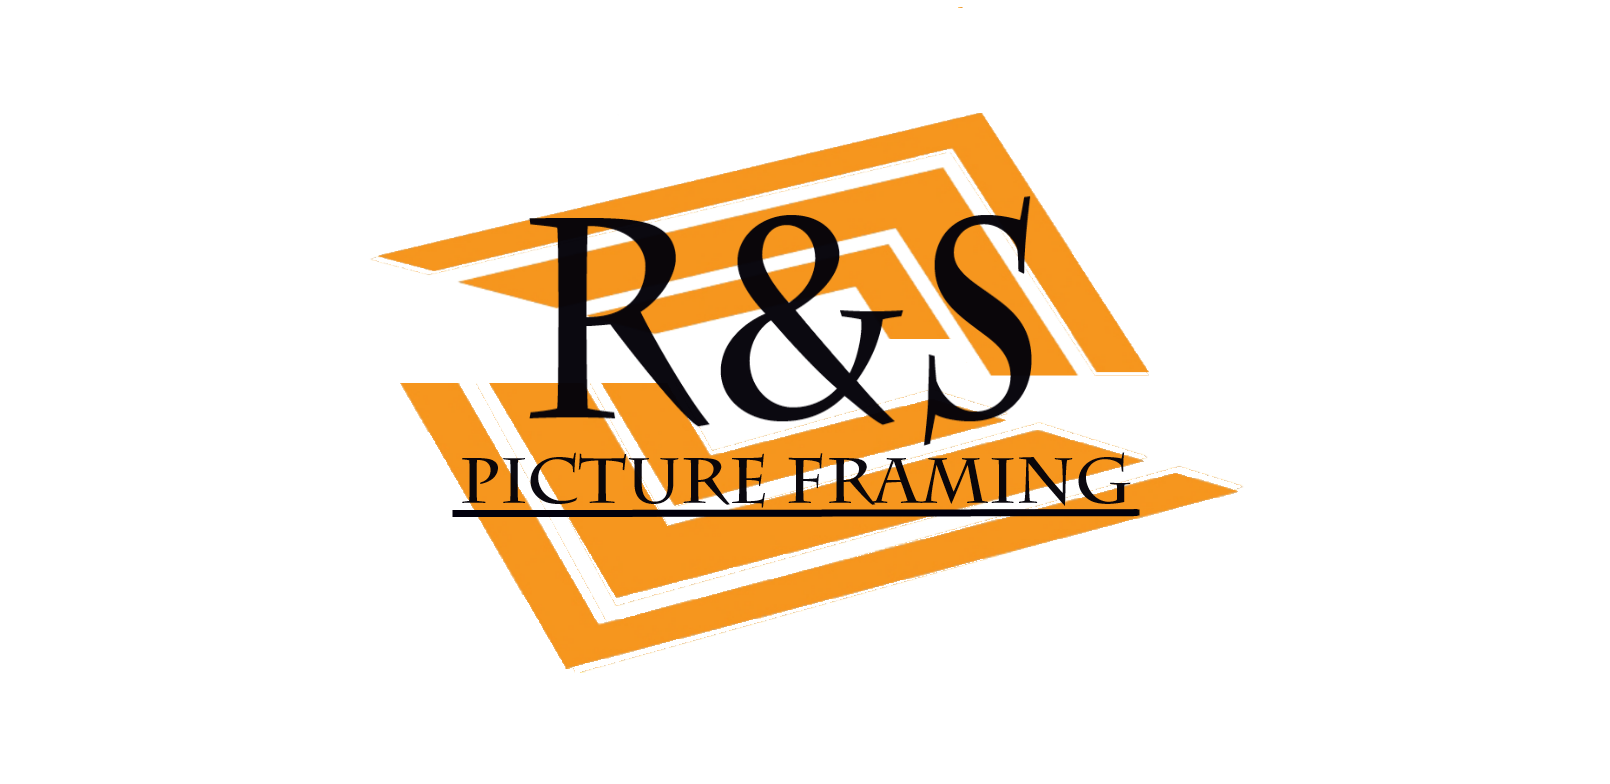 R&S Picture Framing